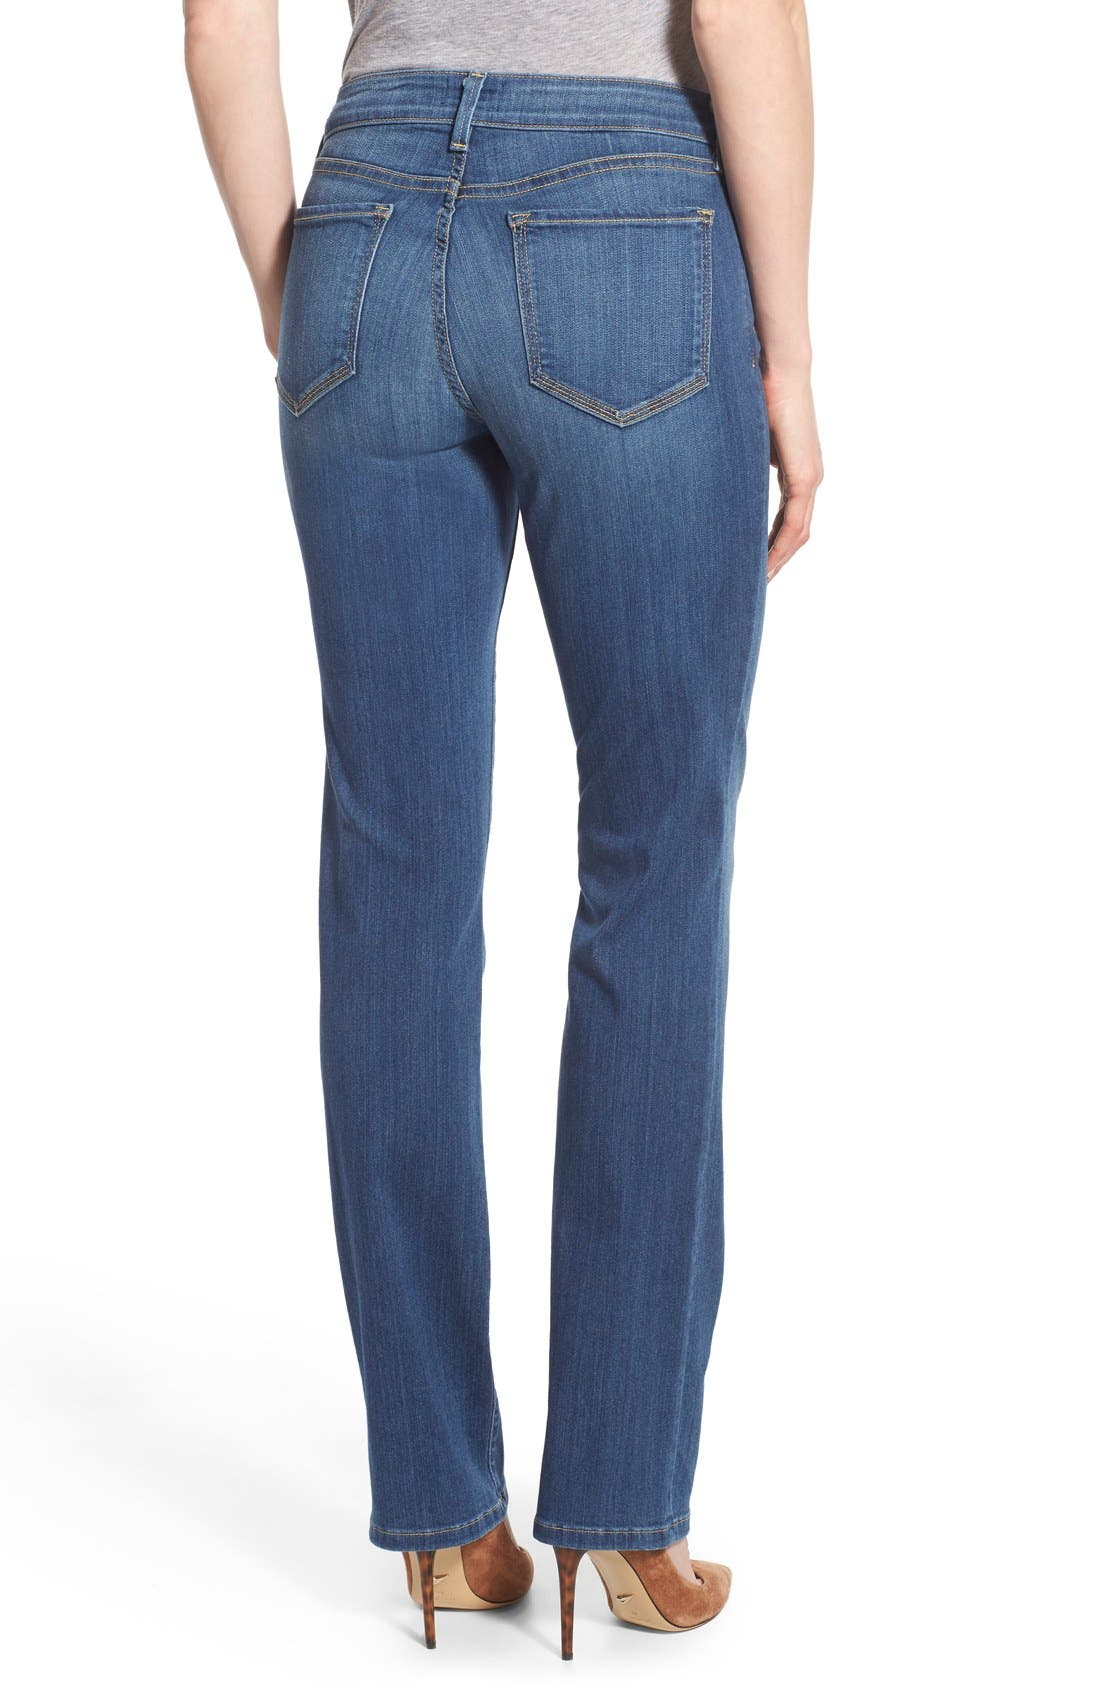 'Marilyn' Stretch Straight Leg Jeans,                             Alternate thumbnail 4, color,                             425